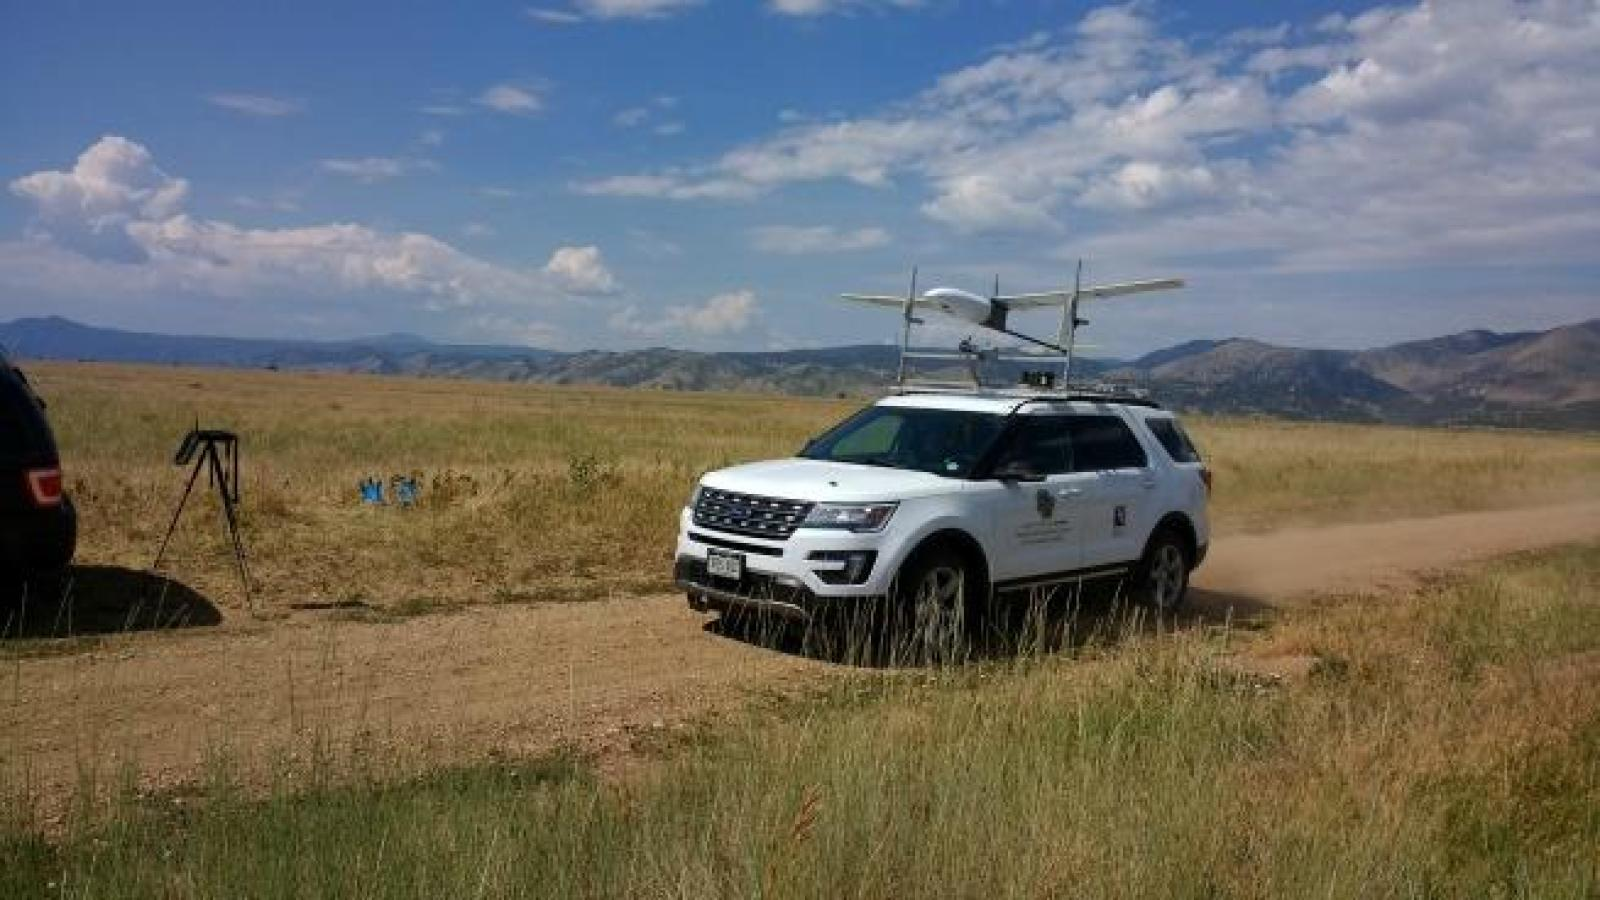 The SuperSwift fixed-wing drone, which is being used this summer in soil moisture mapping work being done in Yuma, as it is roof-launched for validation testing from the top of a University of Colorado vehicle.